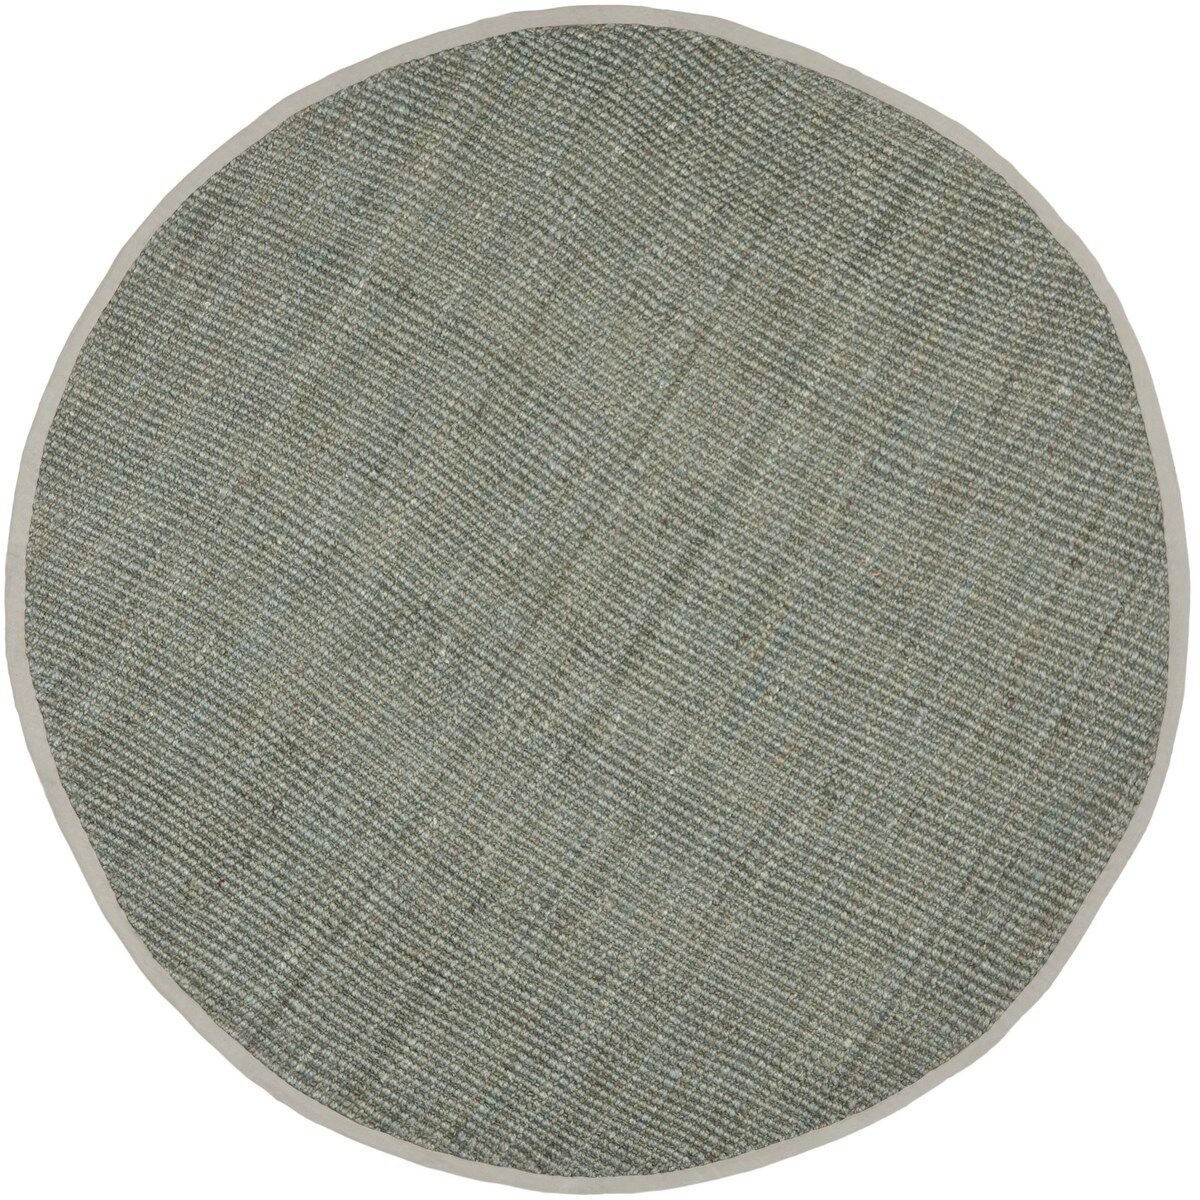 Calidia Hand-Loomed Gray Area Rug Rug Size: Round 5'